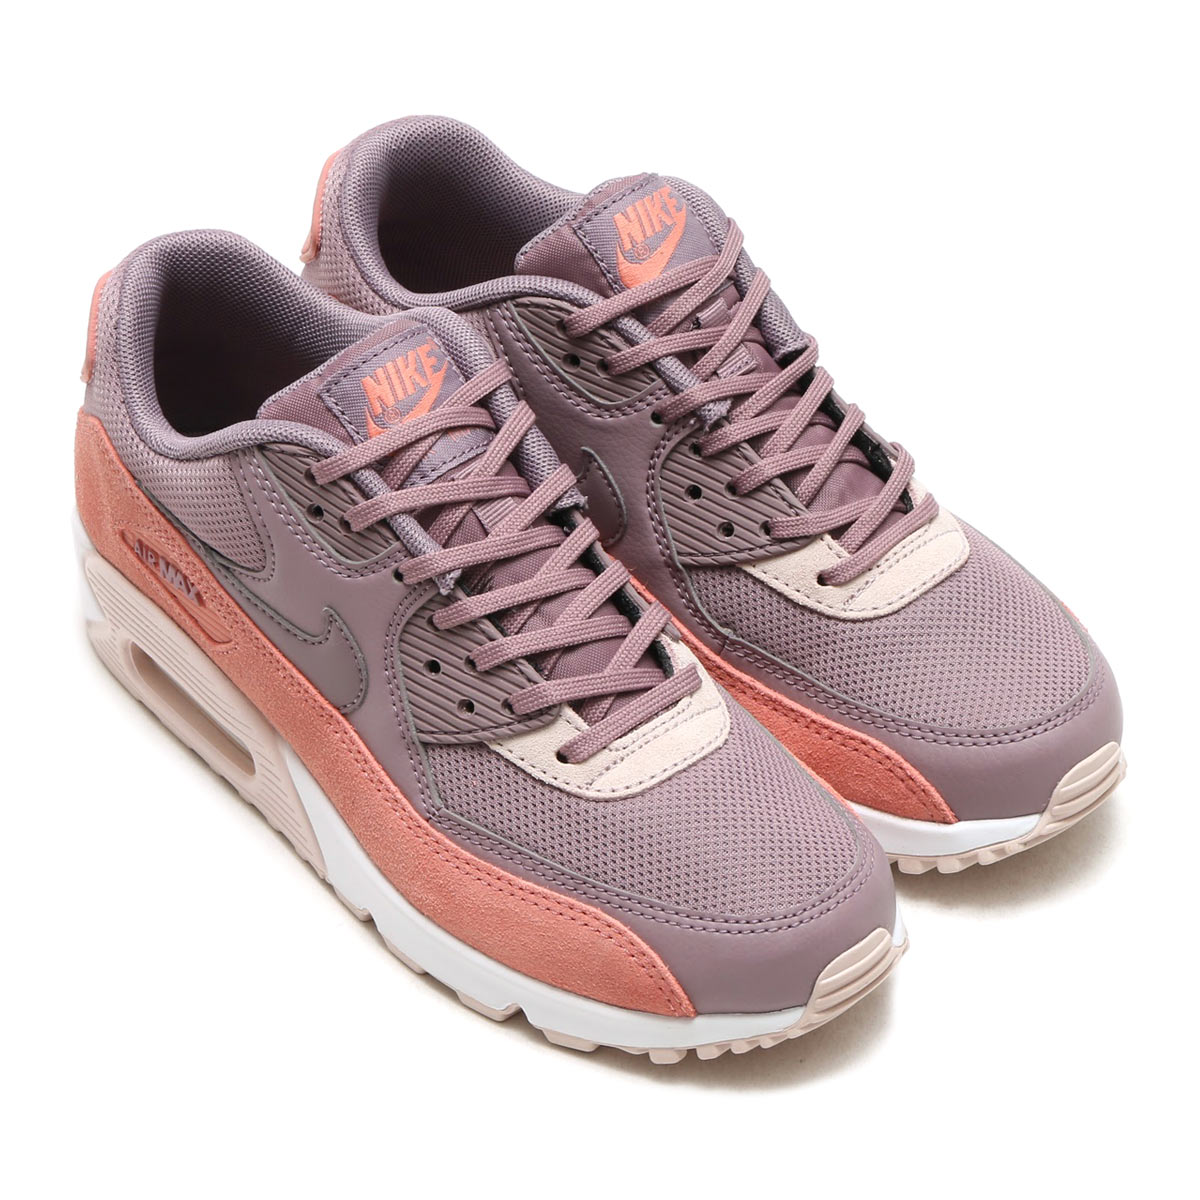 NIKE WMNS AIR MAX 90 (나이키 womens 에어 막스 90) (RED STARDUST/TAUPE GREY-SILT RED-WHITE) 17 FA-S